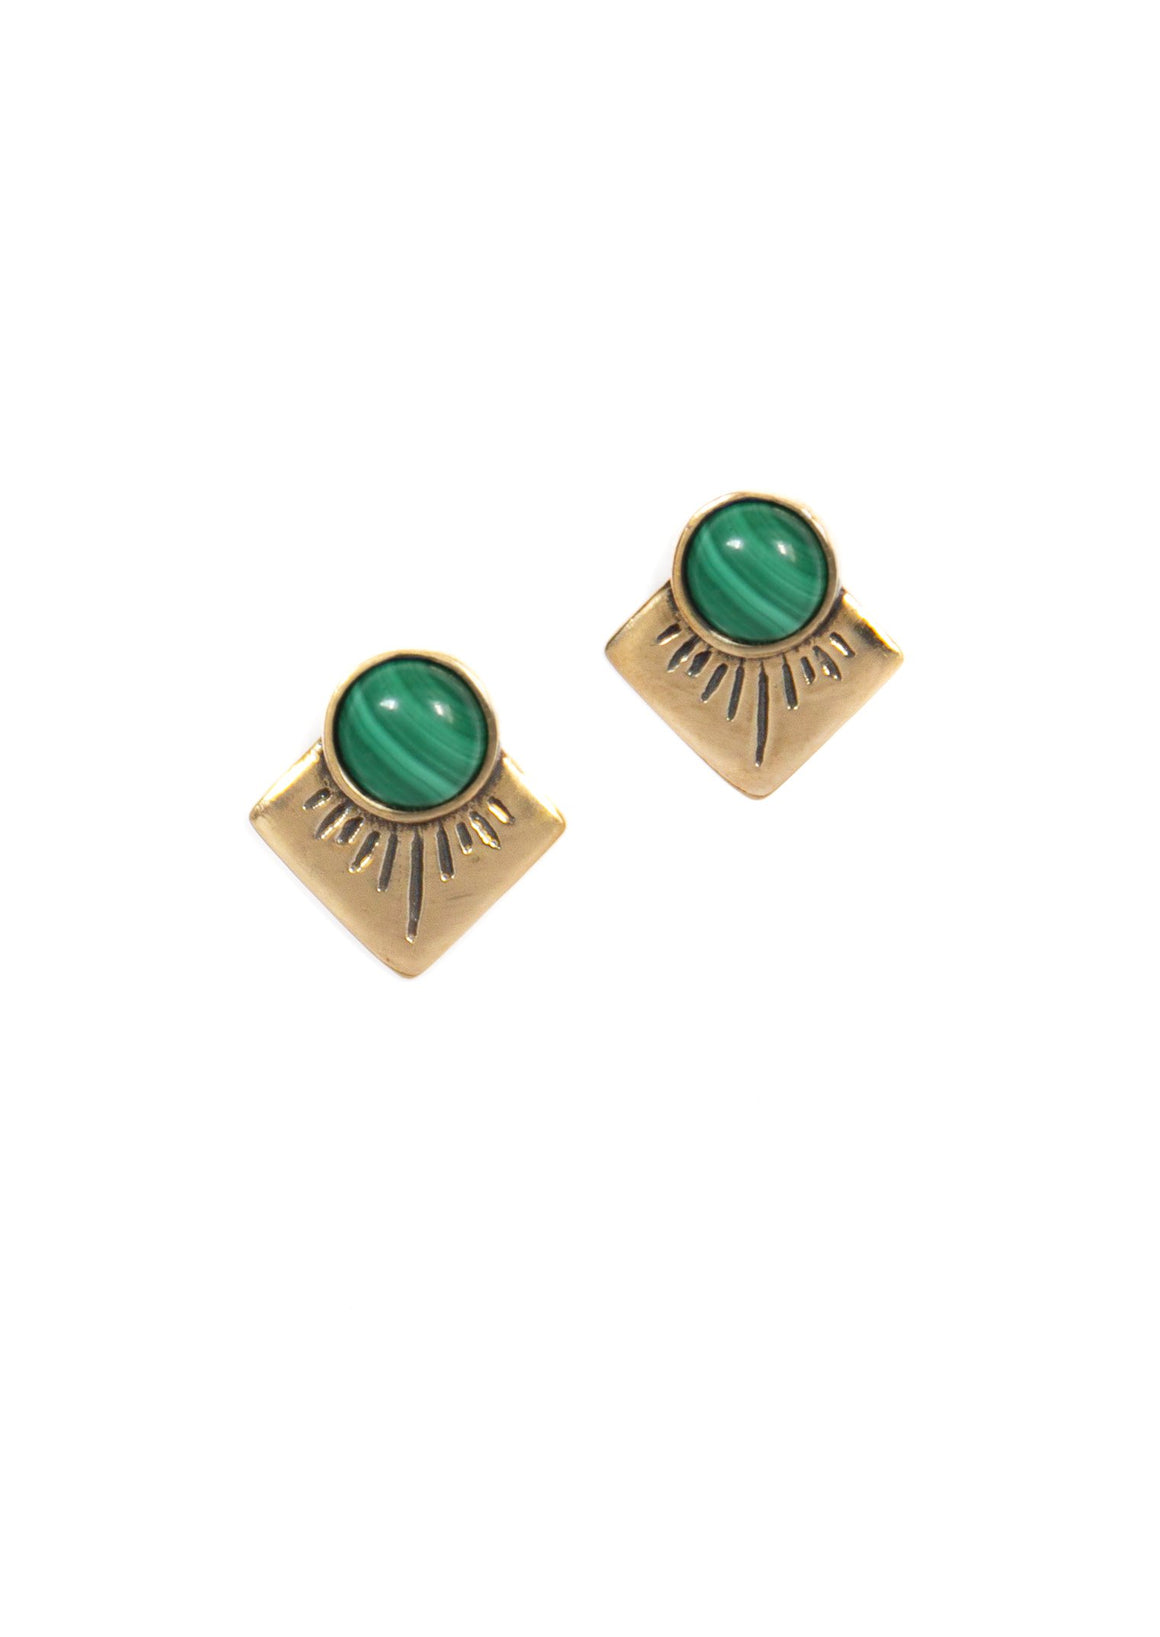 Marisol Stud Earrings ▬ Brass